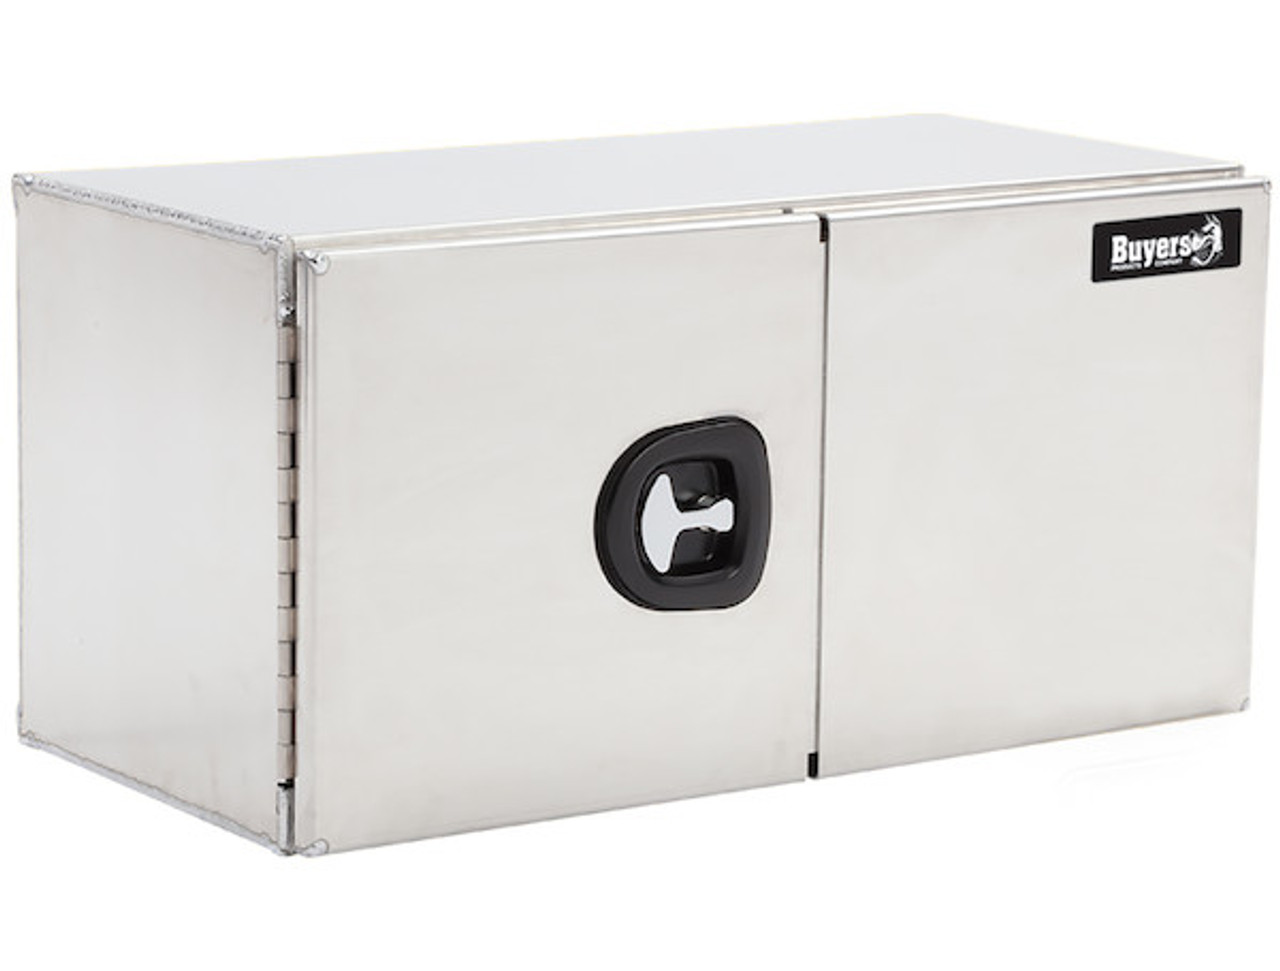 """1705335 BUYERS PRODUCTS SMOOTH ALUMINUM UNDERBODY TOOLBOX WITH BARN DOOR 24""""HX24""""DX36""""W"""